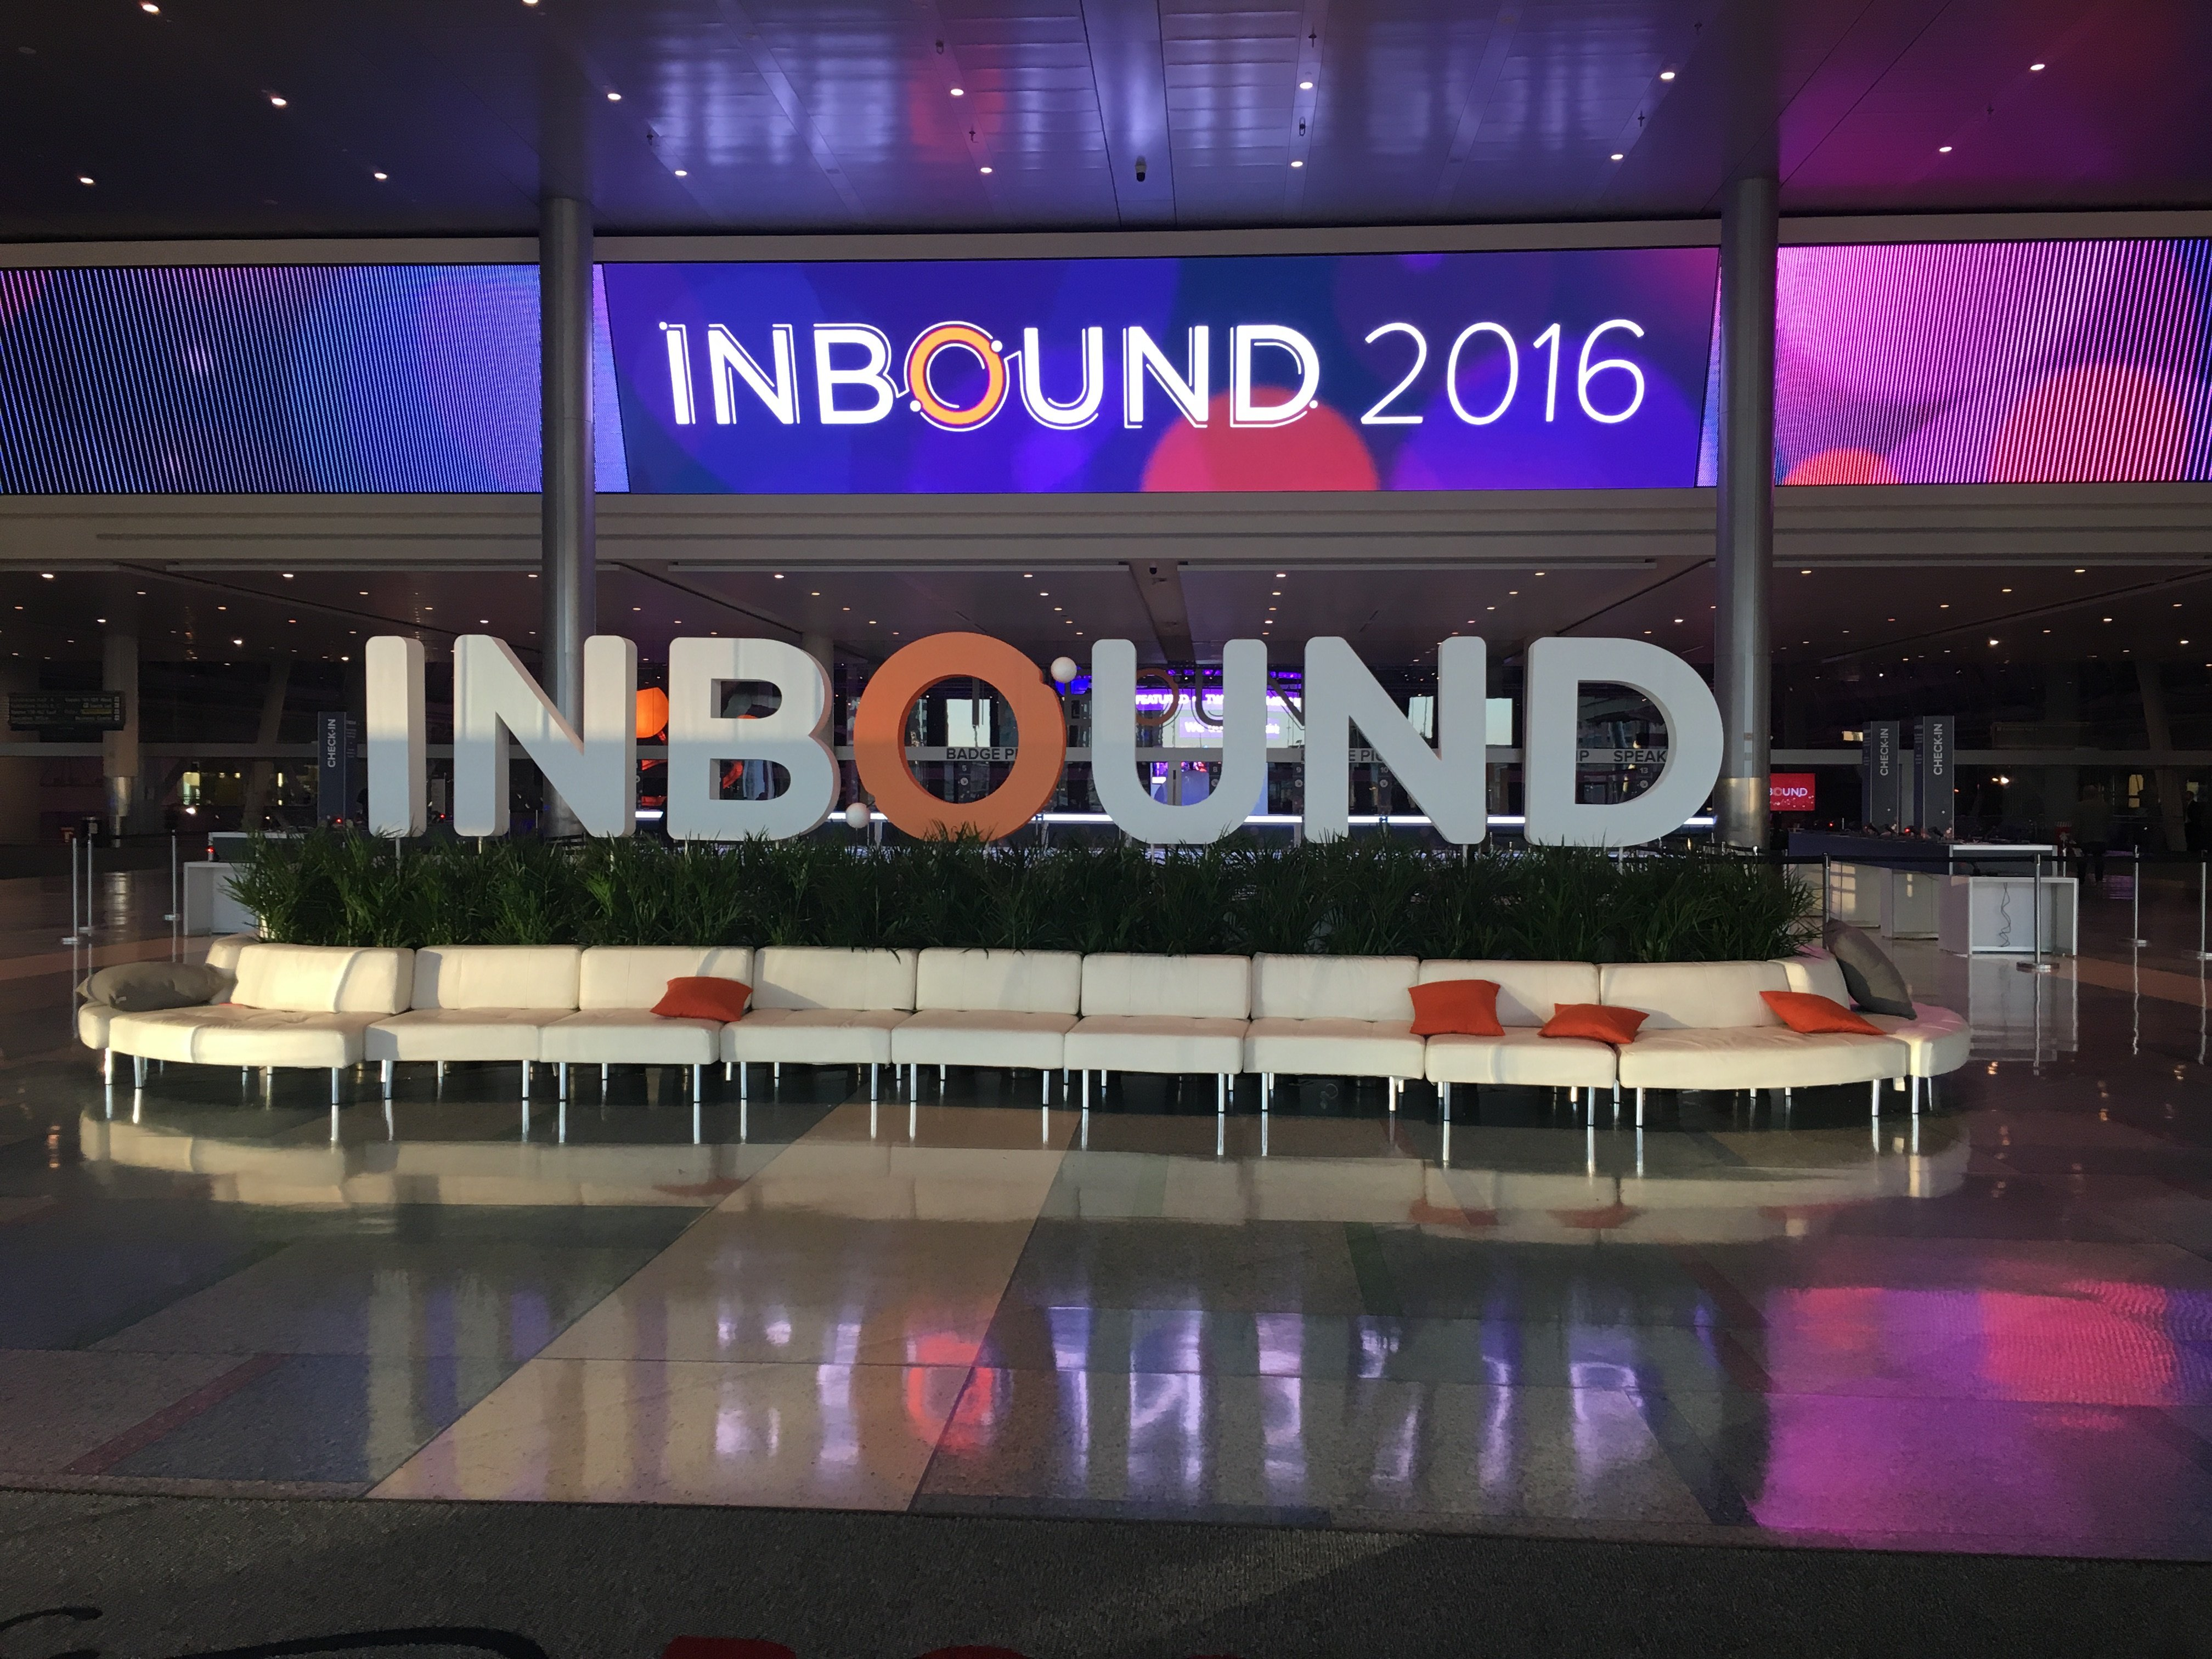 Our Favorite Moments From INBOUND 2016